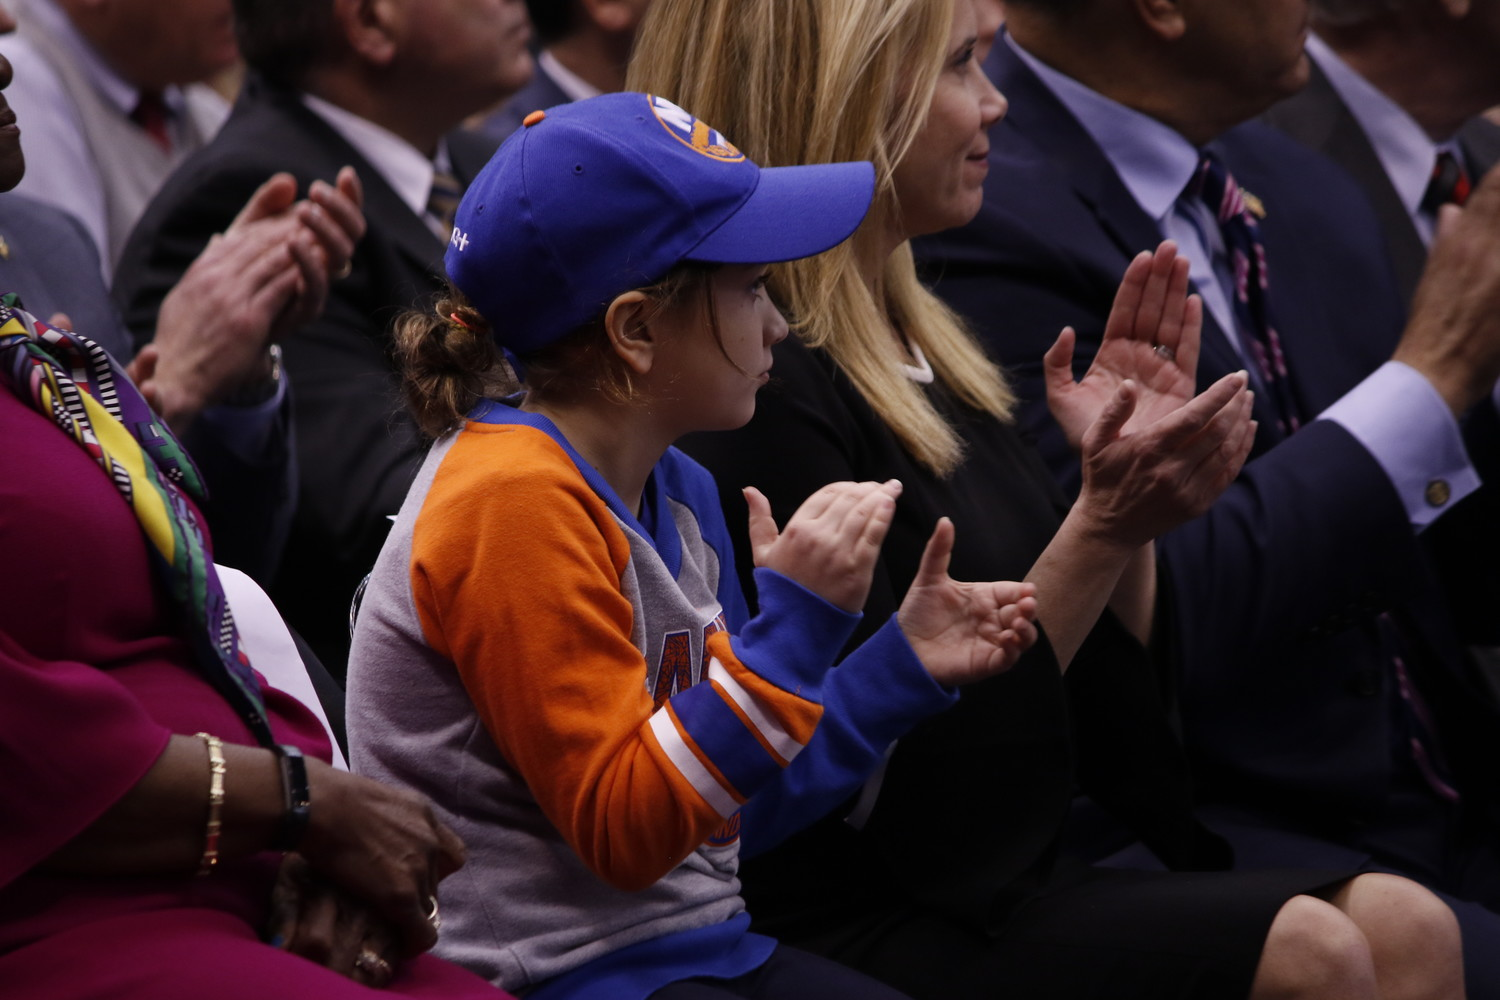 Laura Gillen was in attendance with her daughter Austen Finnegan, 9, who said that she was excited to see the Islanders compete at the Coliseum.